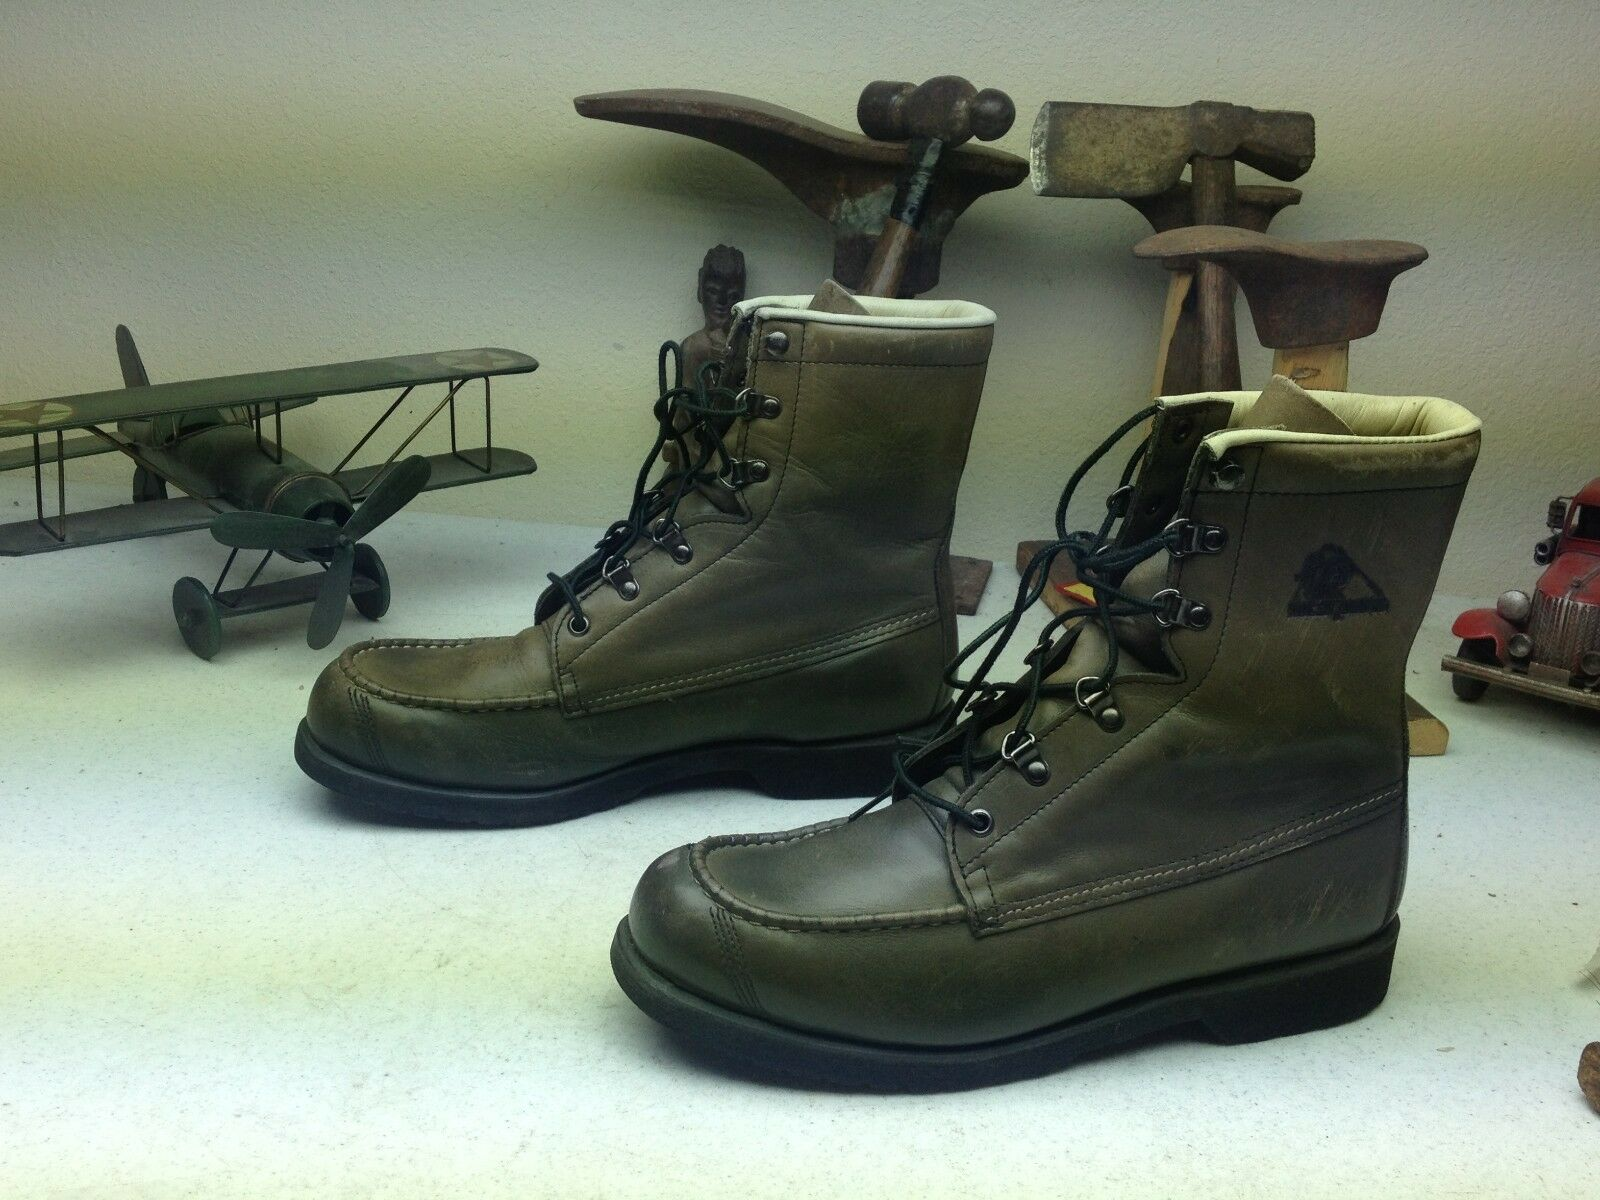 VINTAGE GREEN ROCKY DISTRESSED MADE IN USA LACE UP LEATHER PACKER BOOTS 10 M